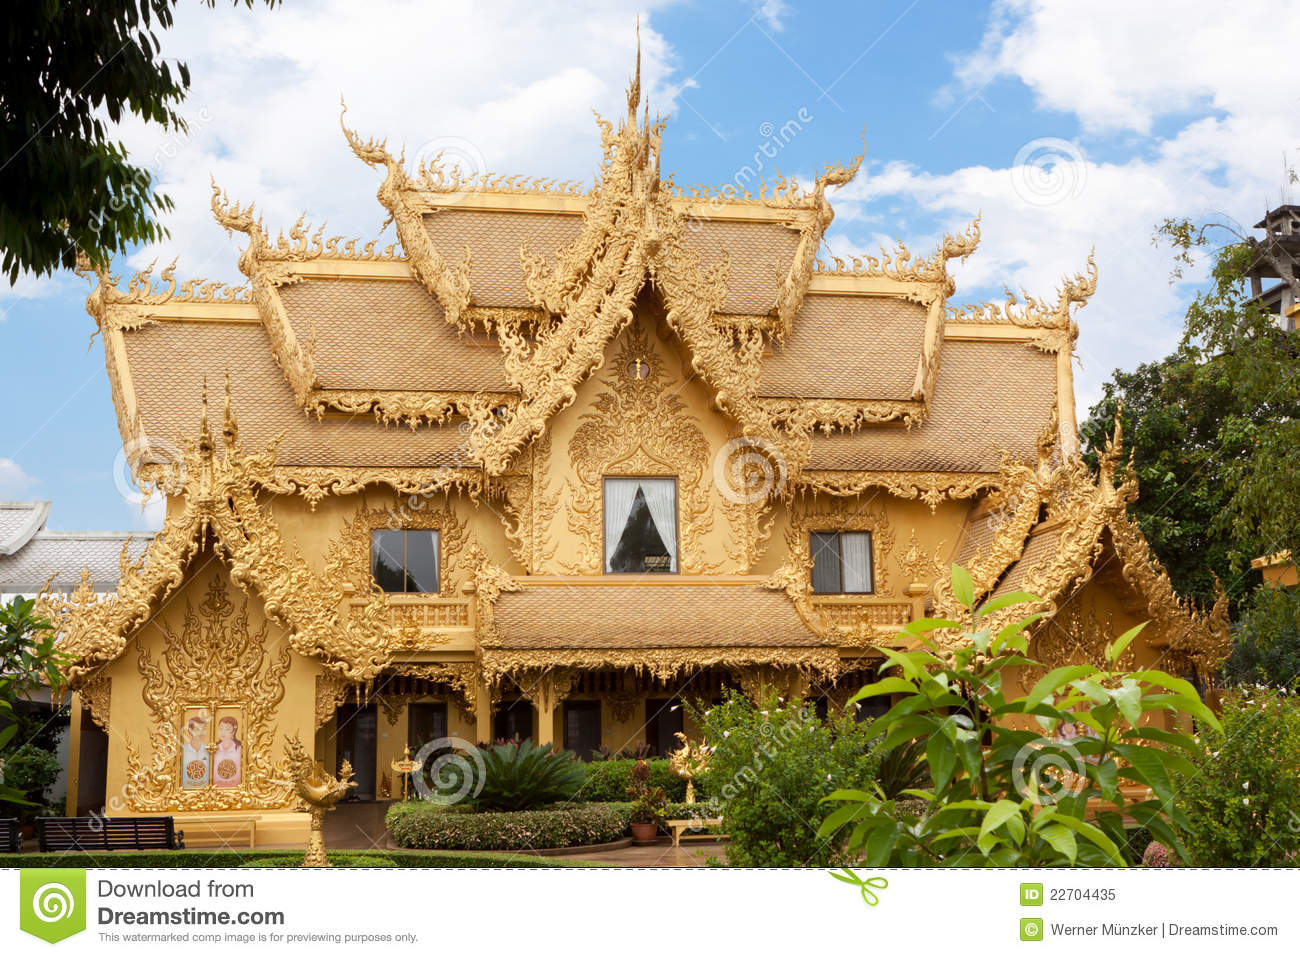 Golden house royalty free stock photo image 22704435 for Free house photos